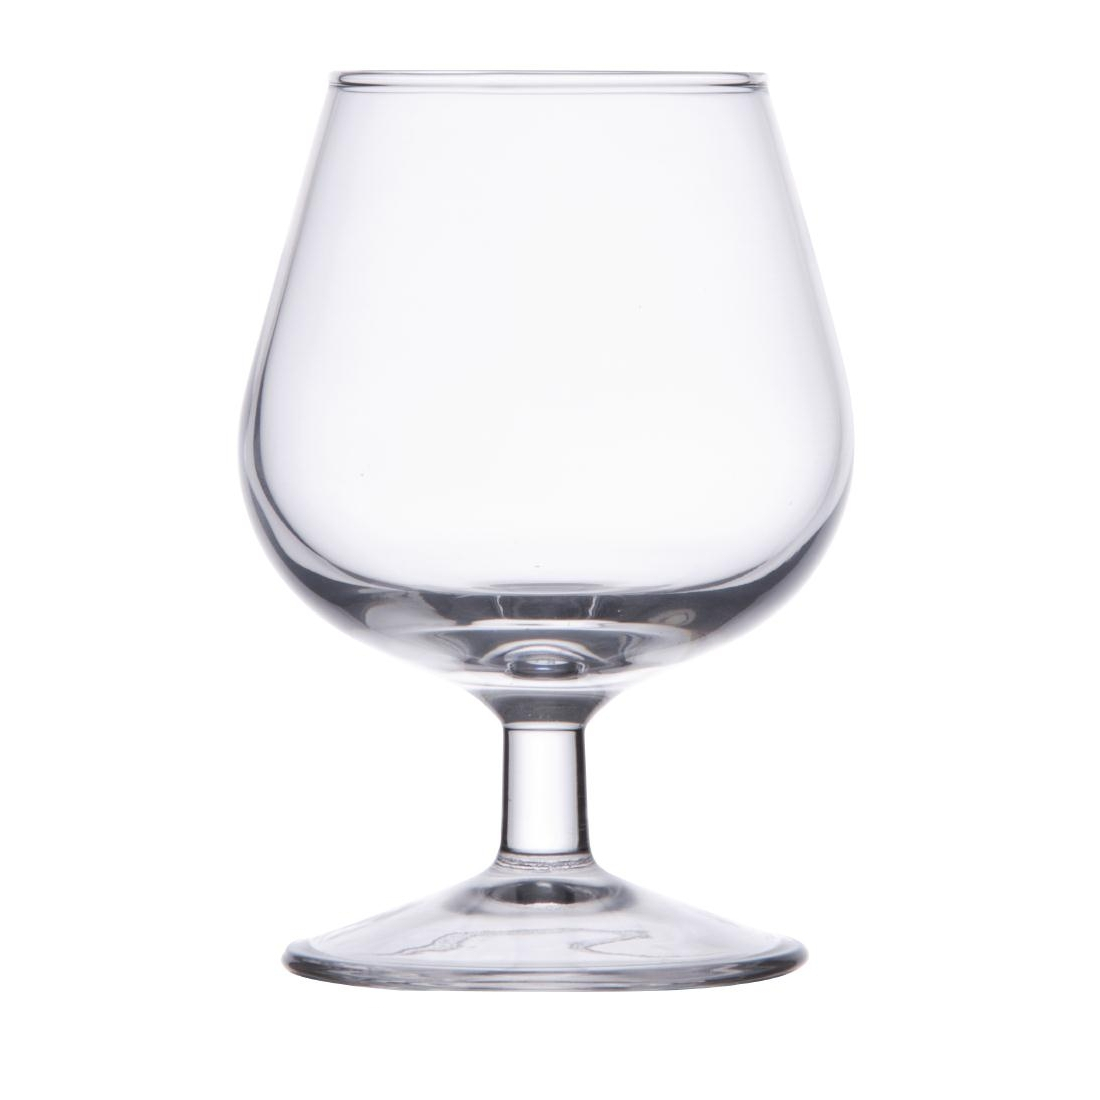 Arcoroc Brandy / Cognac Glasses 150ml